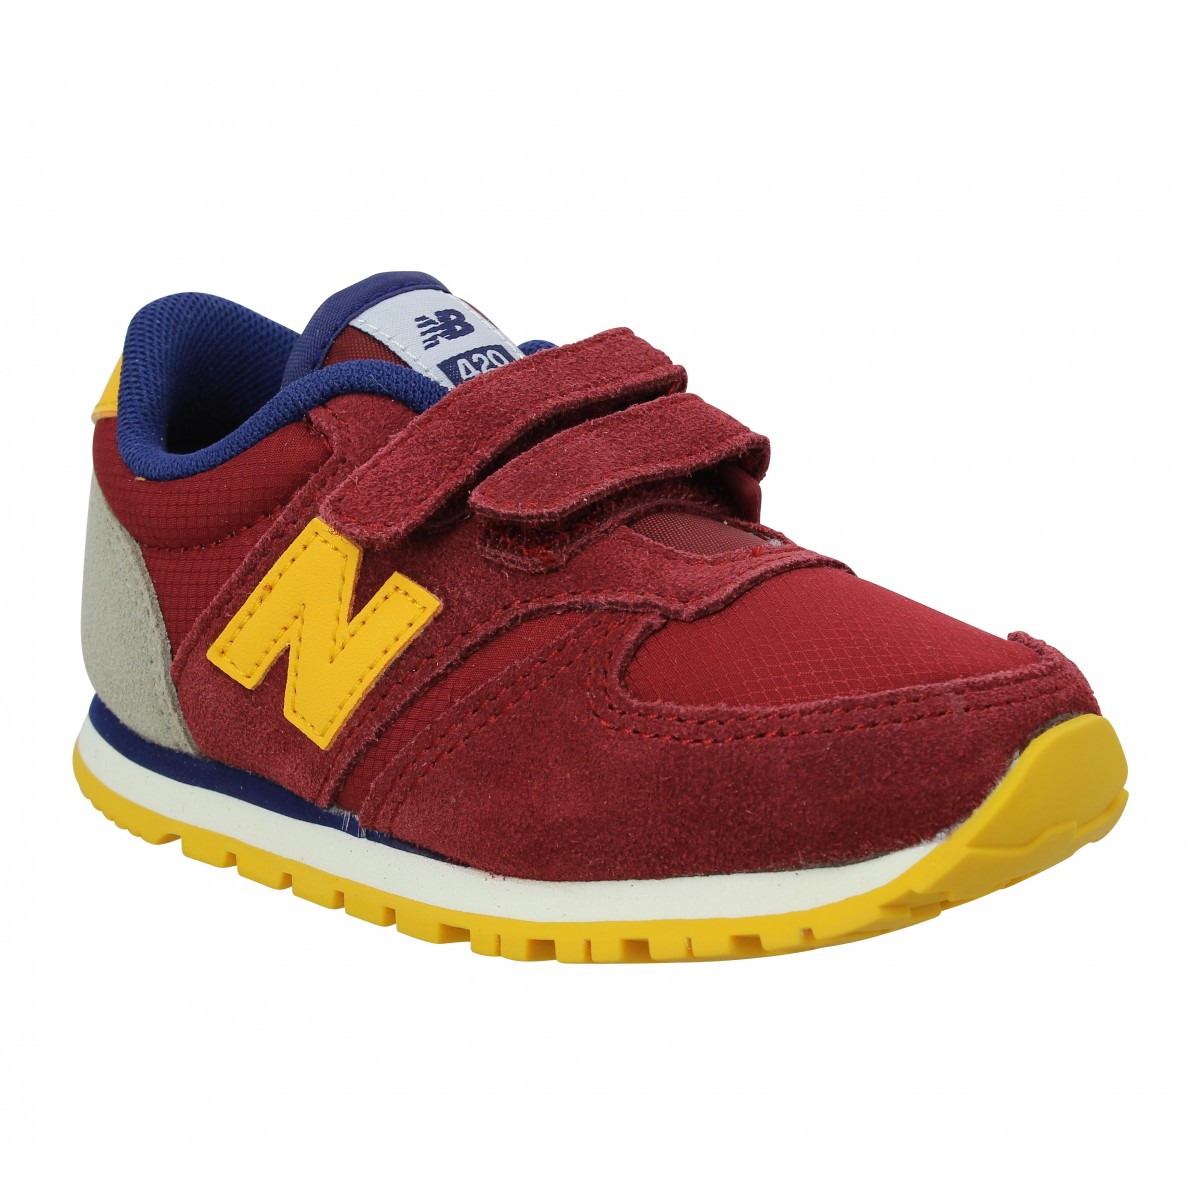 Baskets NEW BALANCE KE 420 Enfant Bordeaux